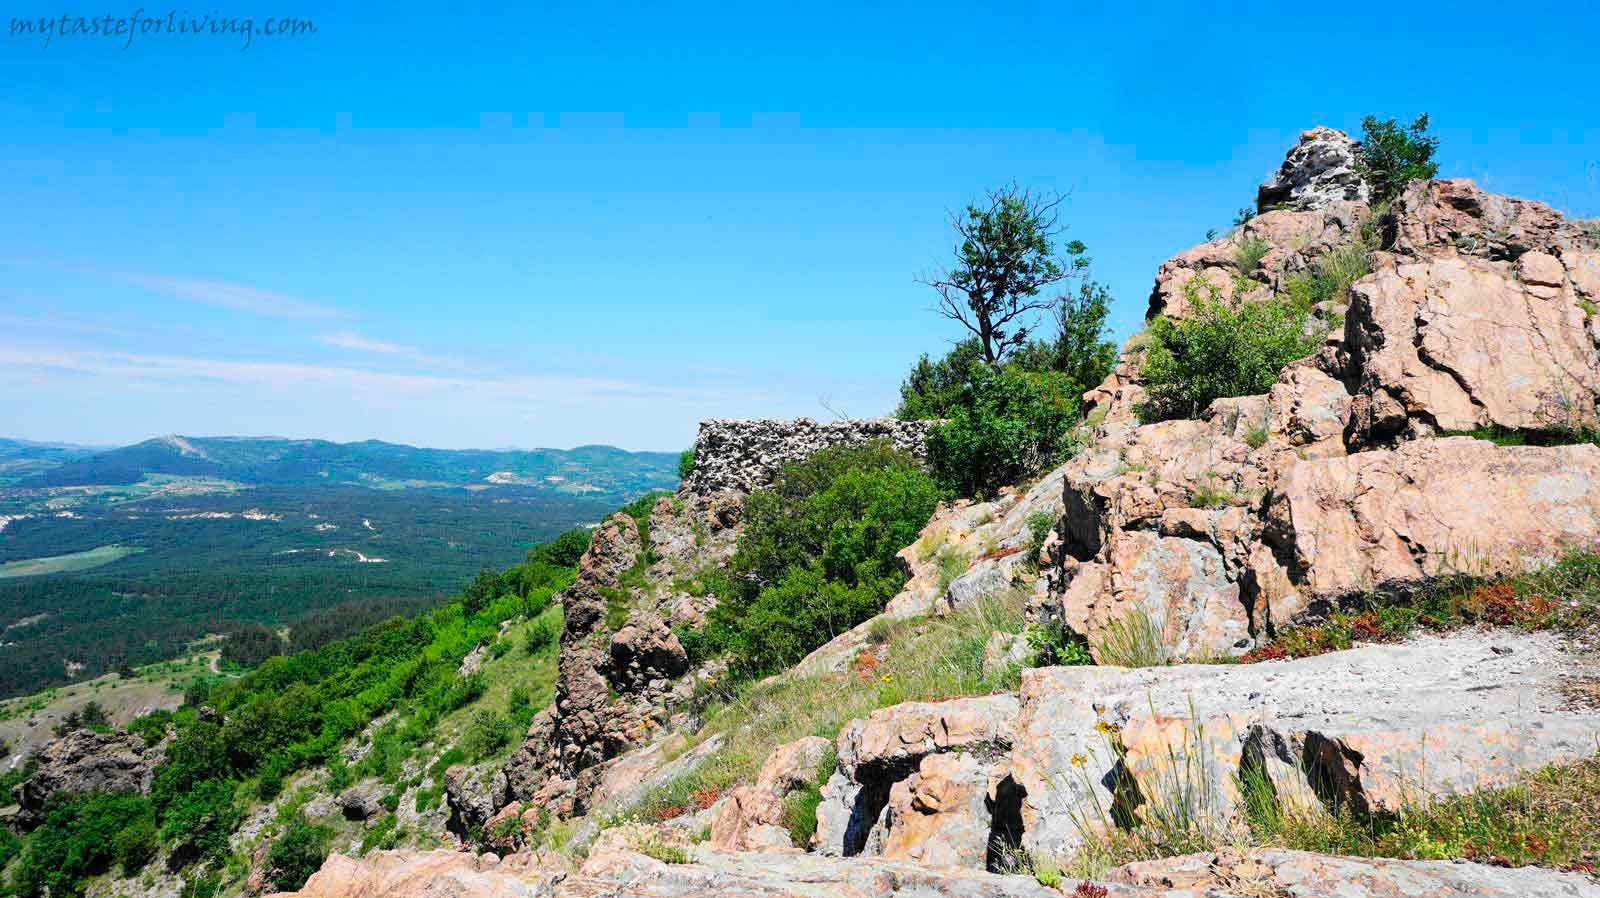 The medieval fortress and peak Monyak (Monek) are located about 11 km from the town of Kardzhali, Bulgaria, near the village of Shiroko Pole, above the dam Studen Kladenets.